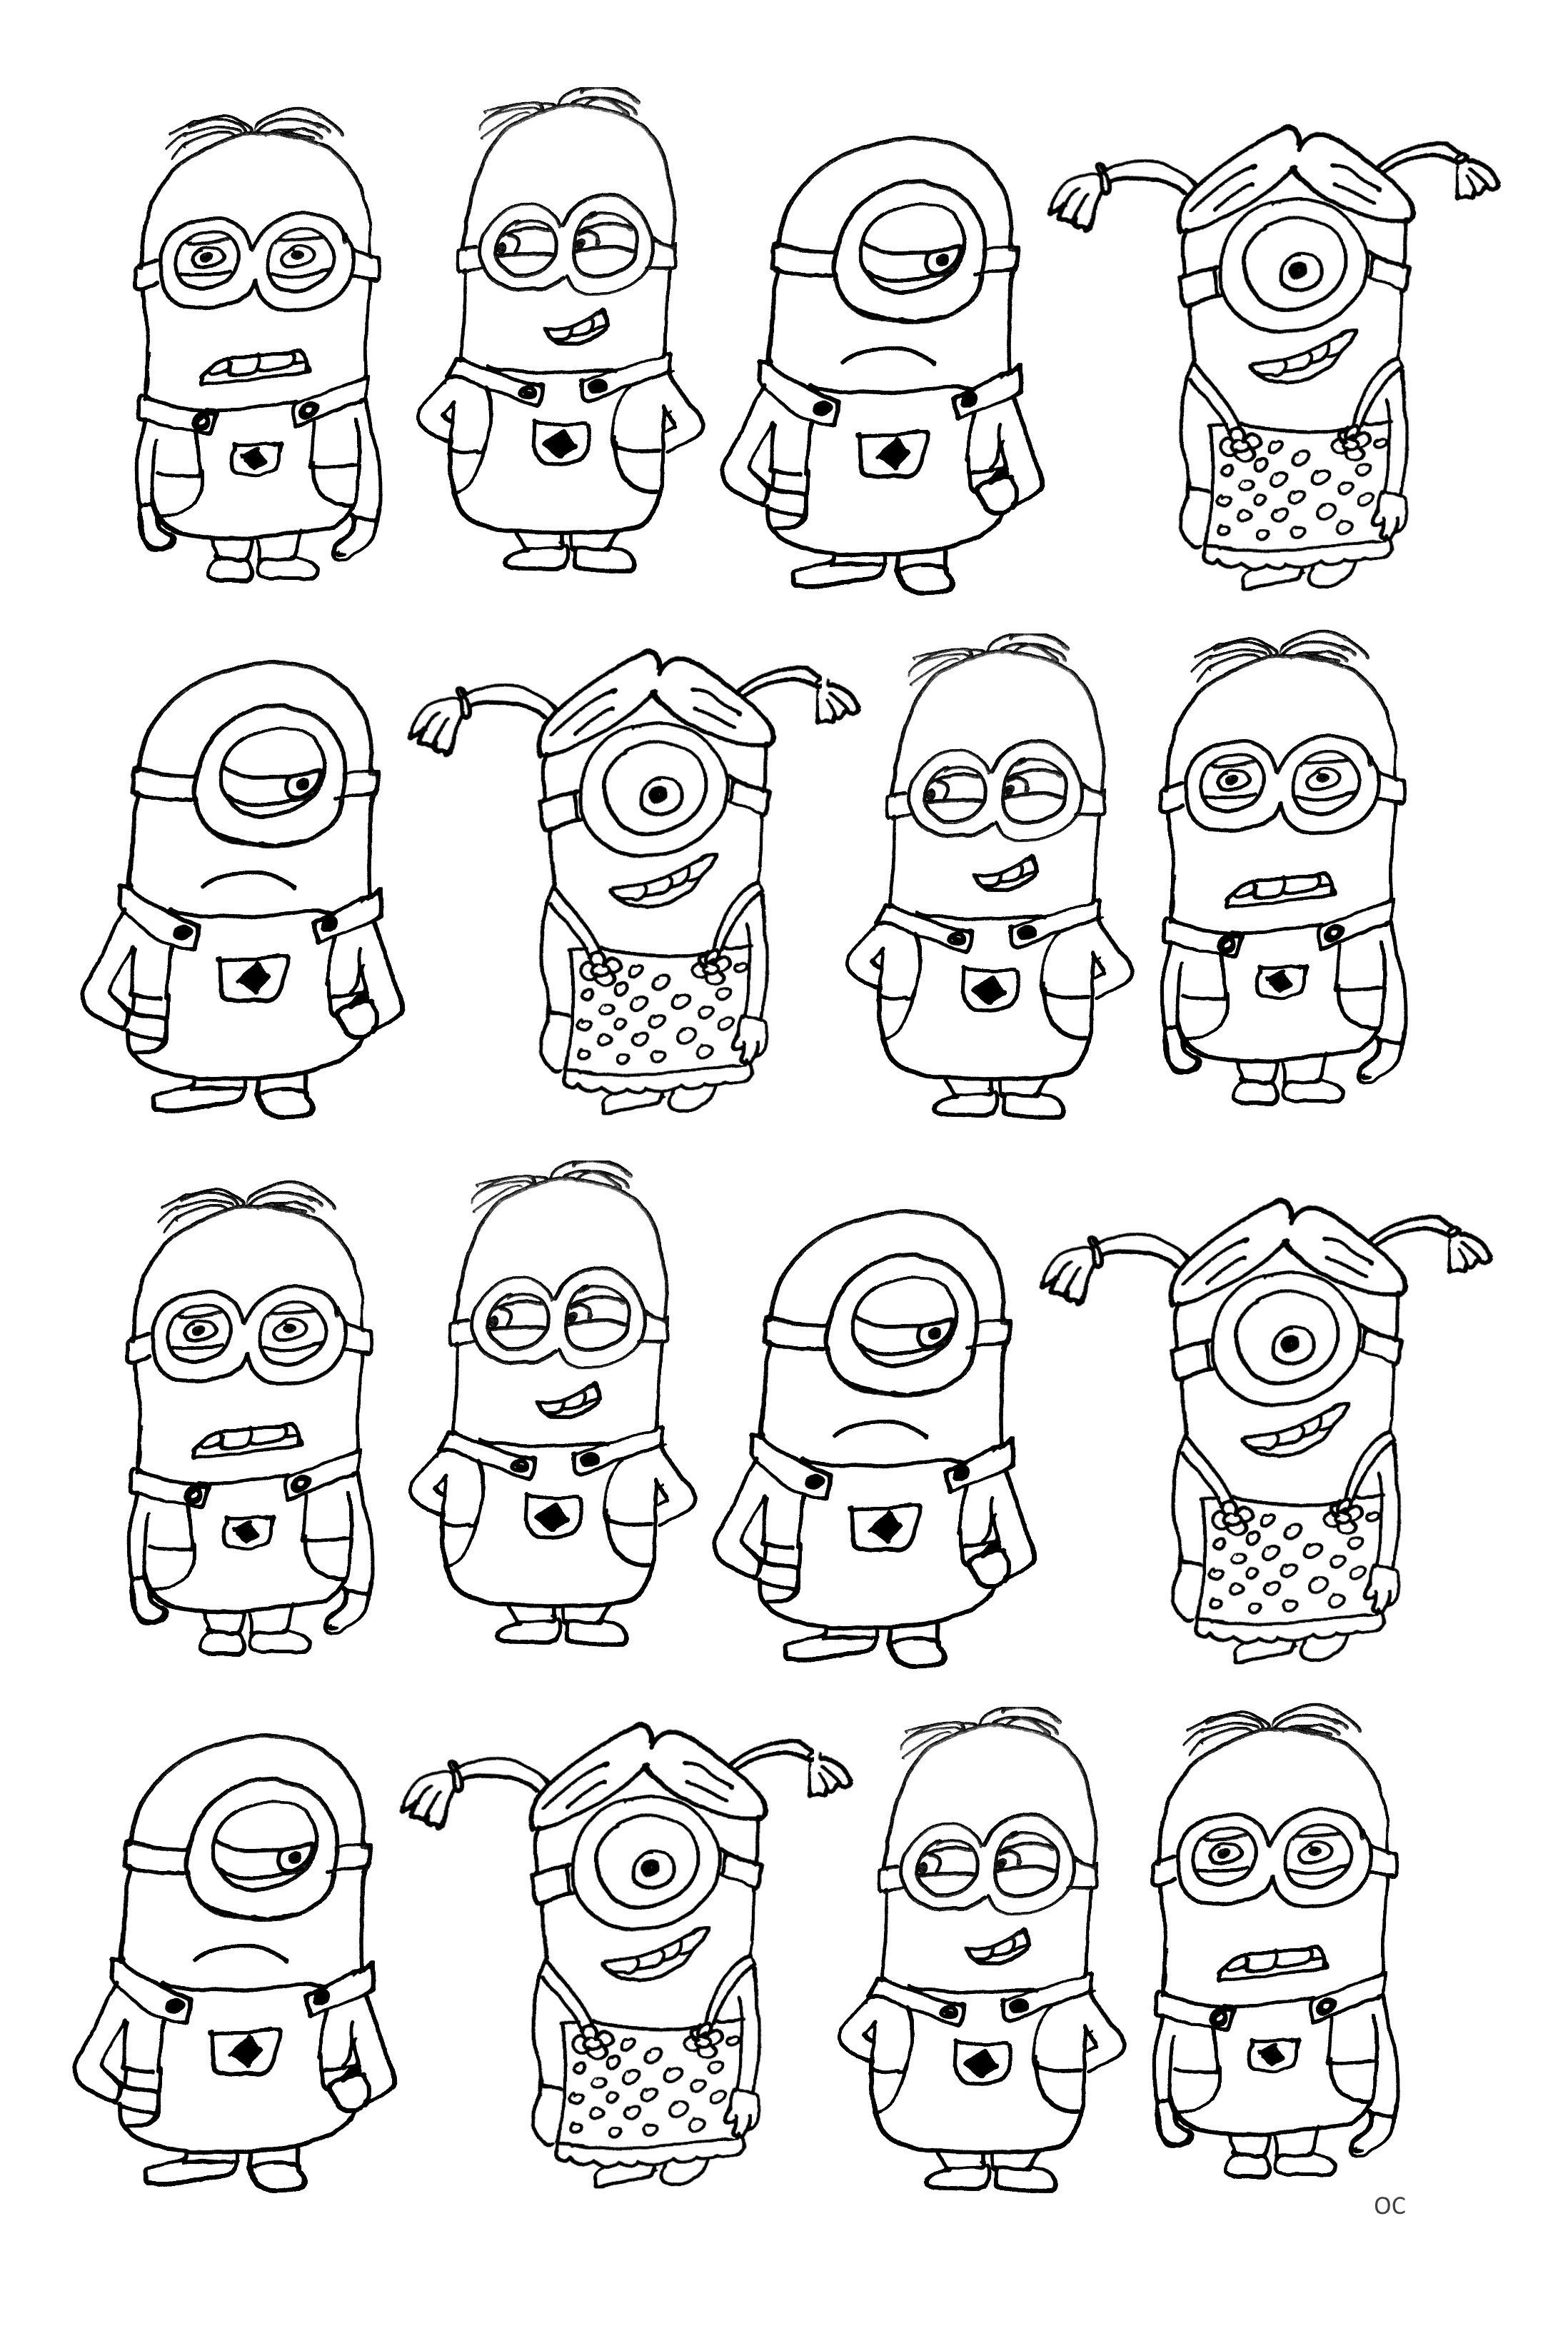 Numerous Minions Numerous Minions Image With Minions From The Gallery Unclassifiable Keyw Minion Coloring Pages Minions Coloring Pages Coloring Books